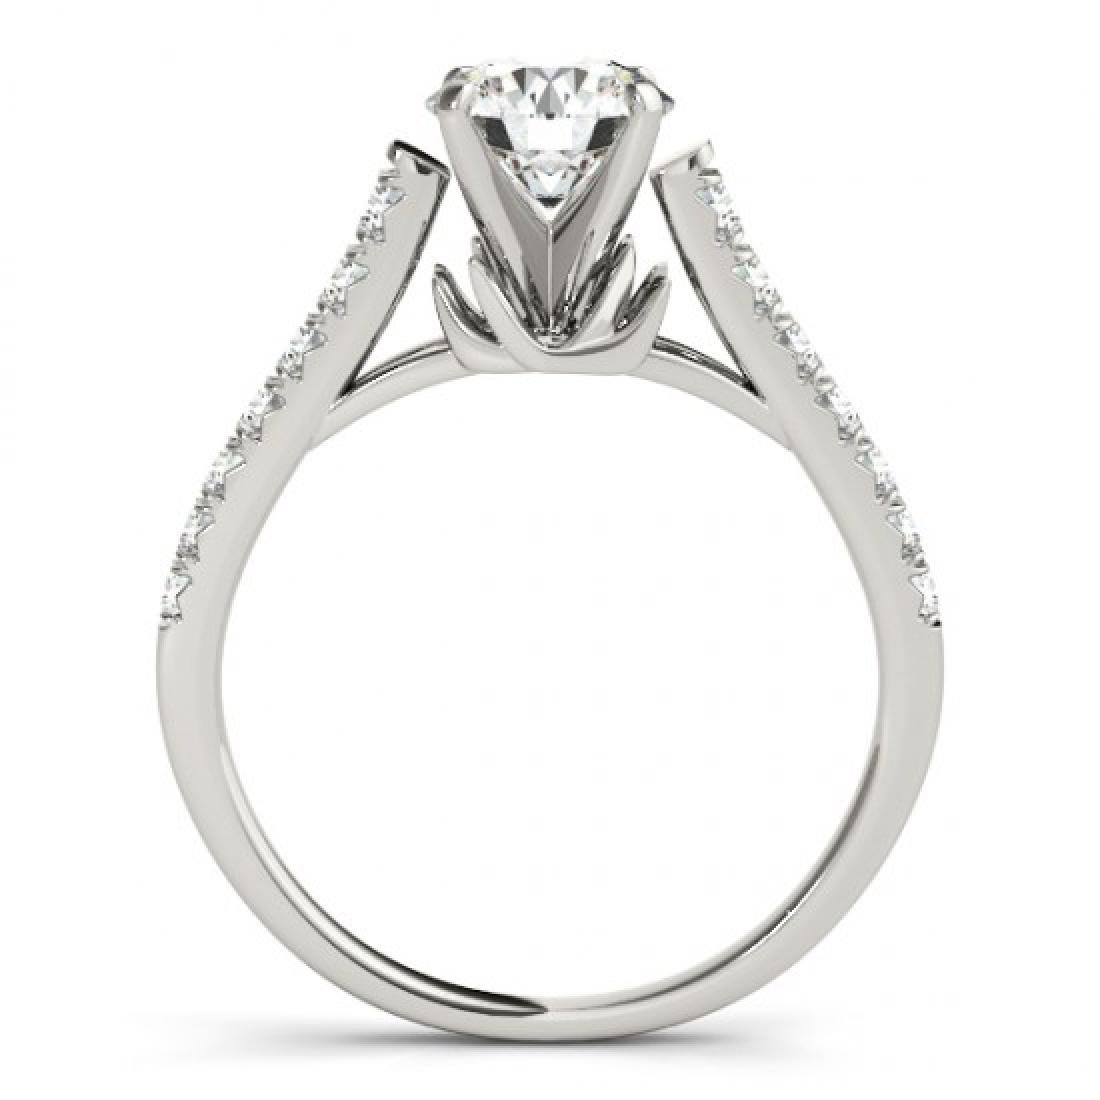 1.46 CTW Certified VS/SI Diamond Solitaire Ring 14K - 2